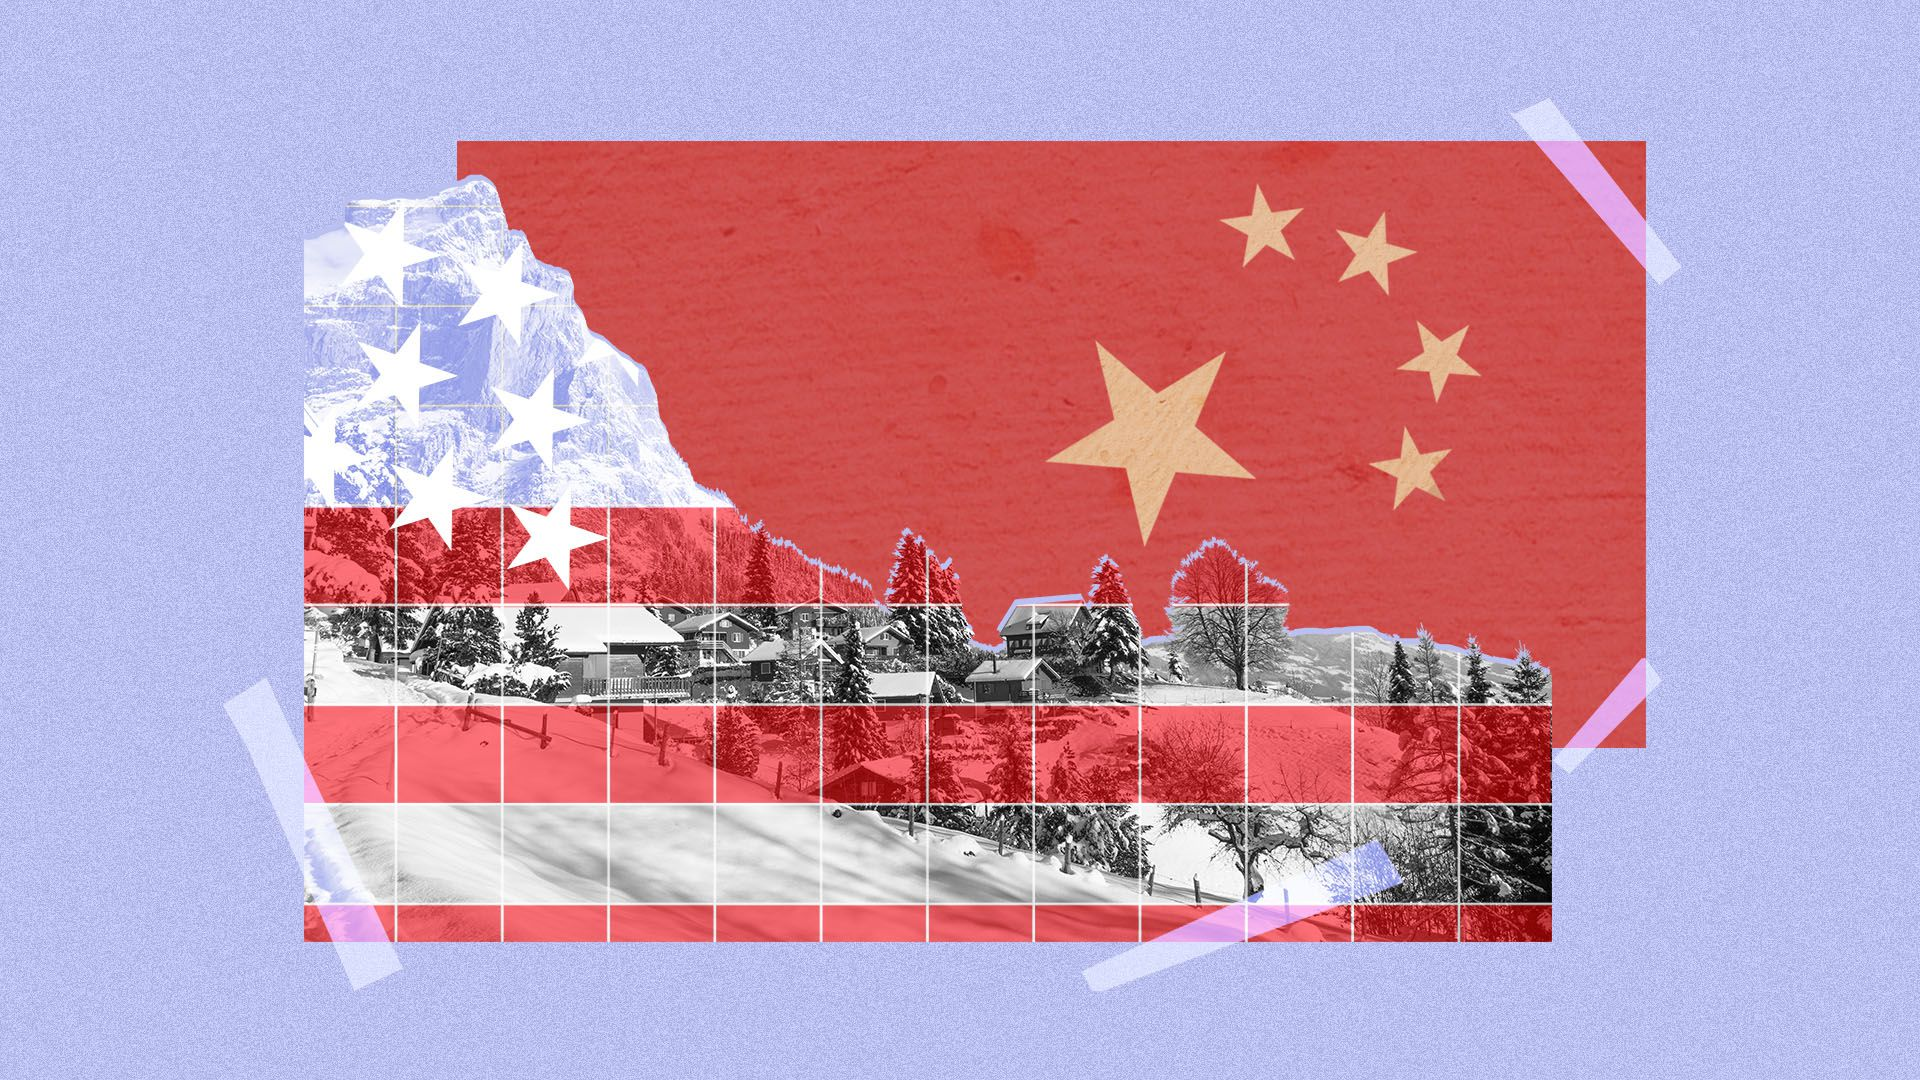 Illustration of the Swiss Alps, overlaid with elements of the American and Chinese flags